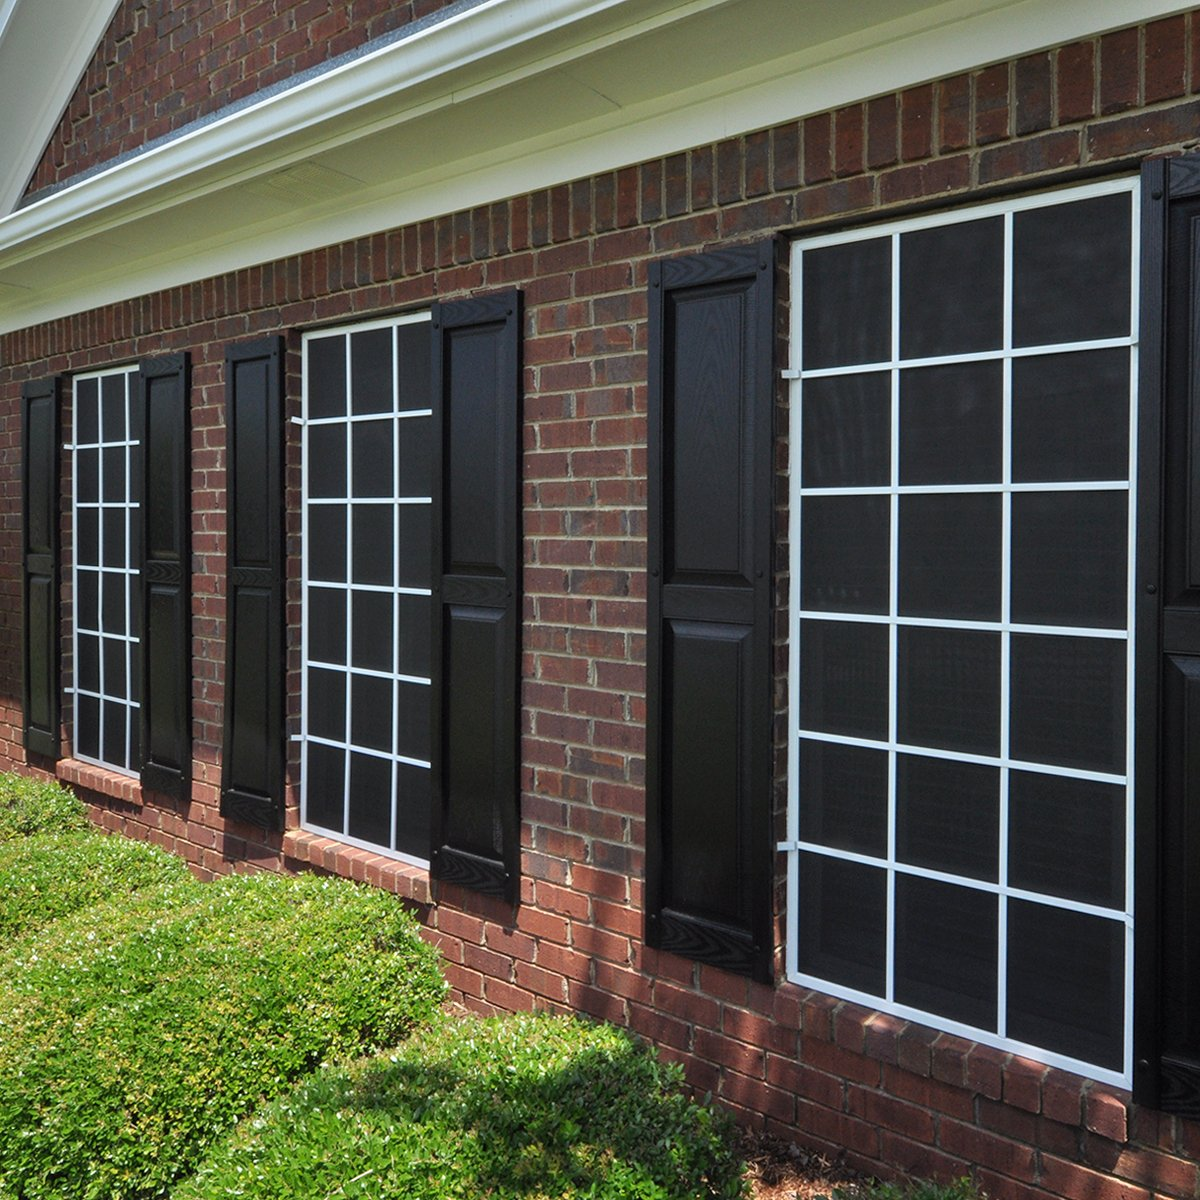 Phifer 3001973 SuperSolar Screen, 84'' x 50', Charcoal by PHIFER (Image #3)